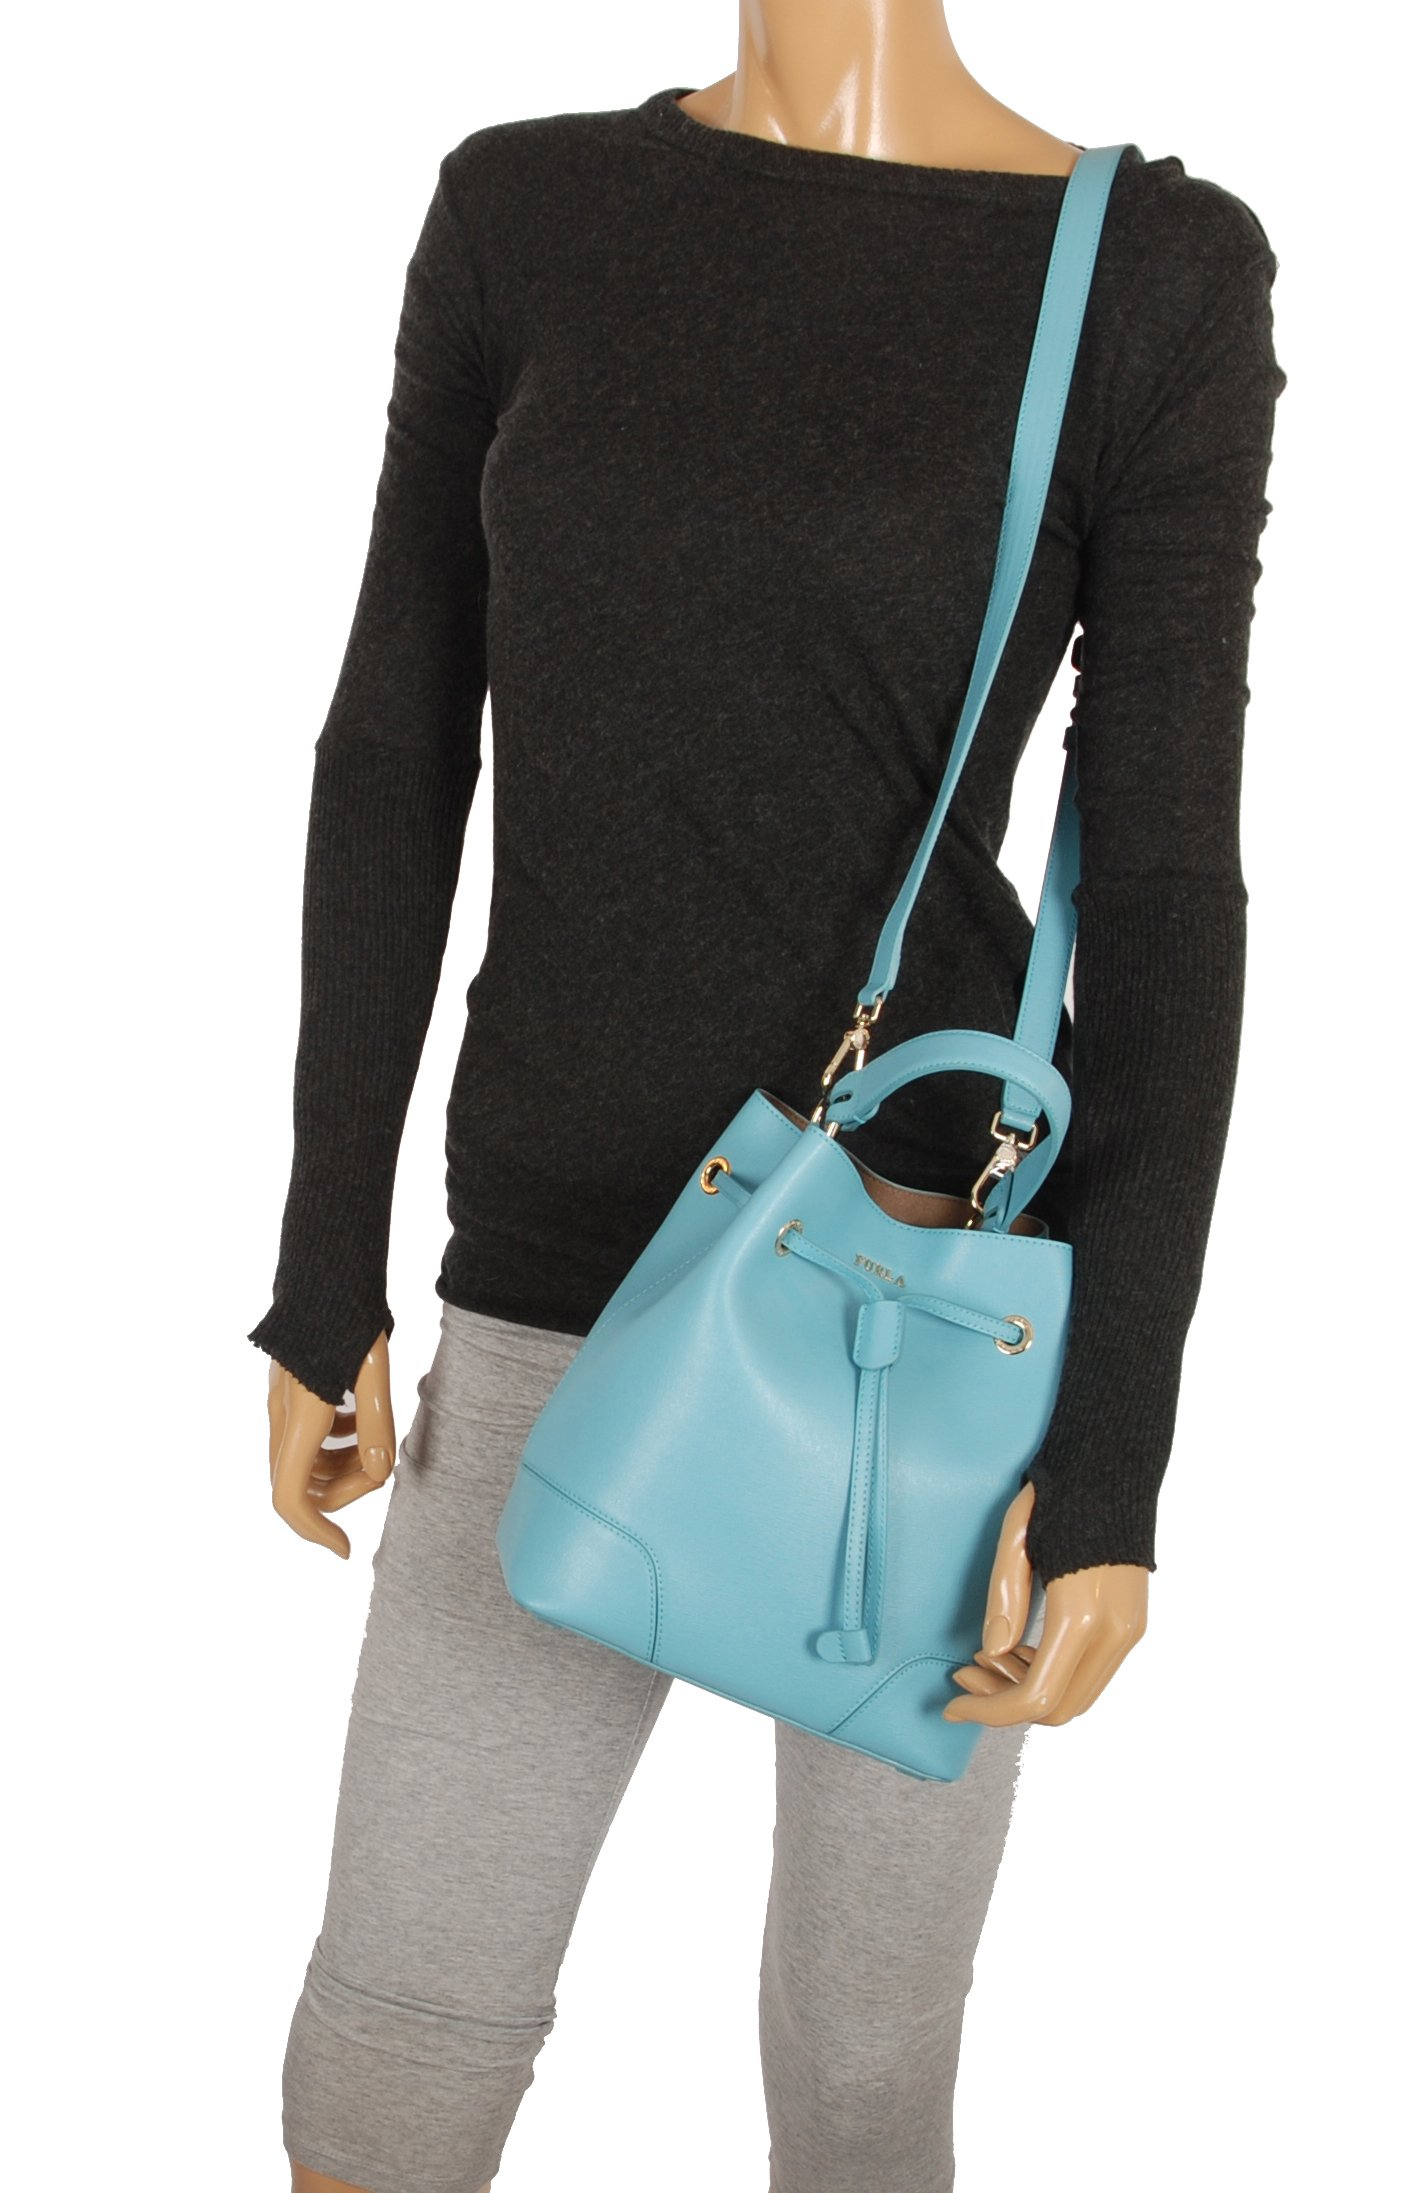 Furla Stacy S Drawstring crossbody bag in Turquoise by Furla (Image #3)